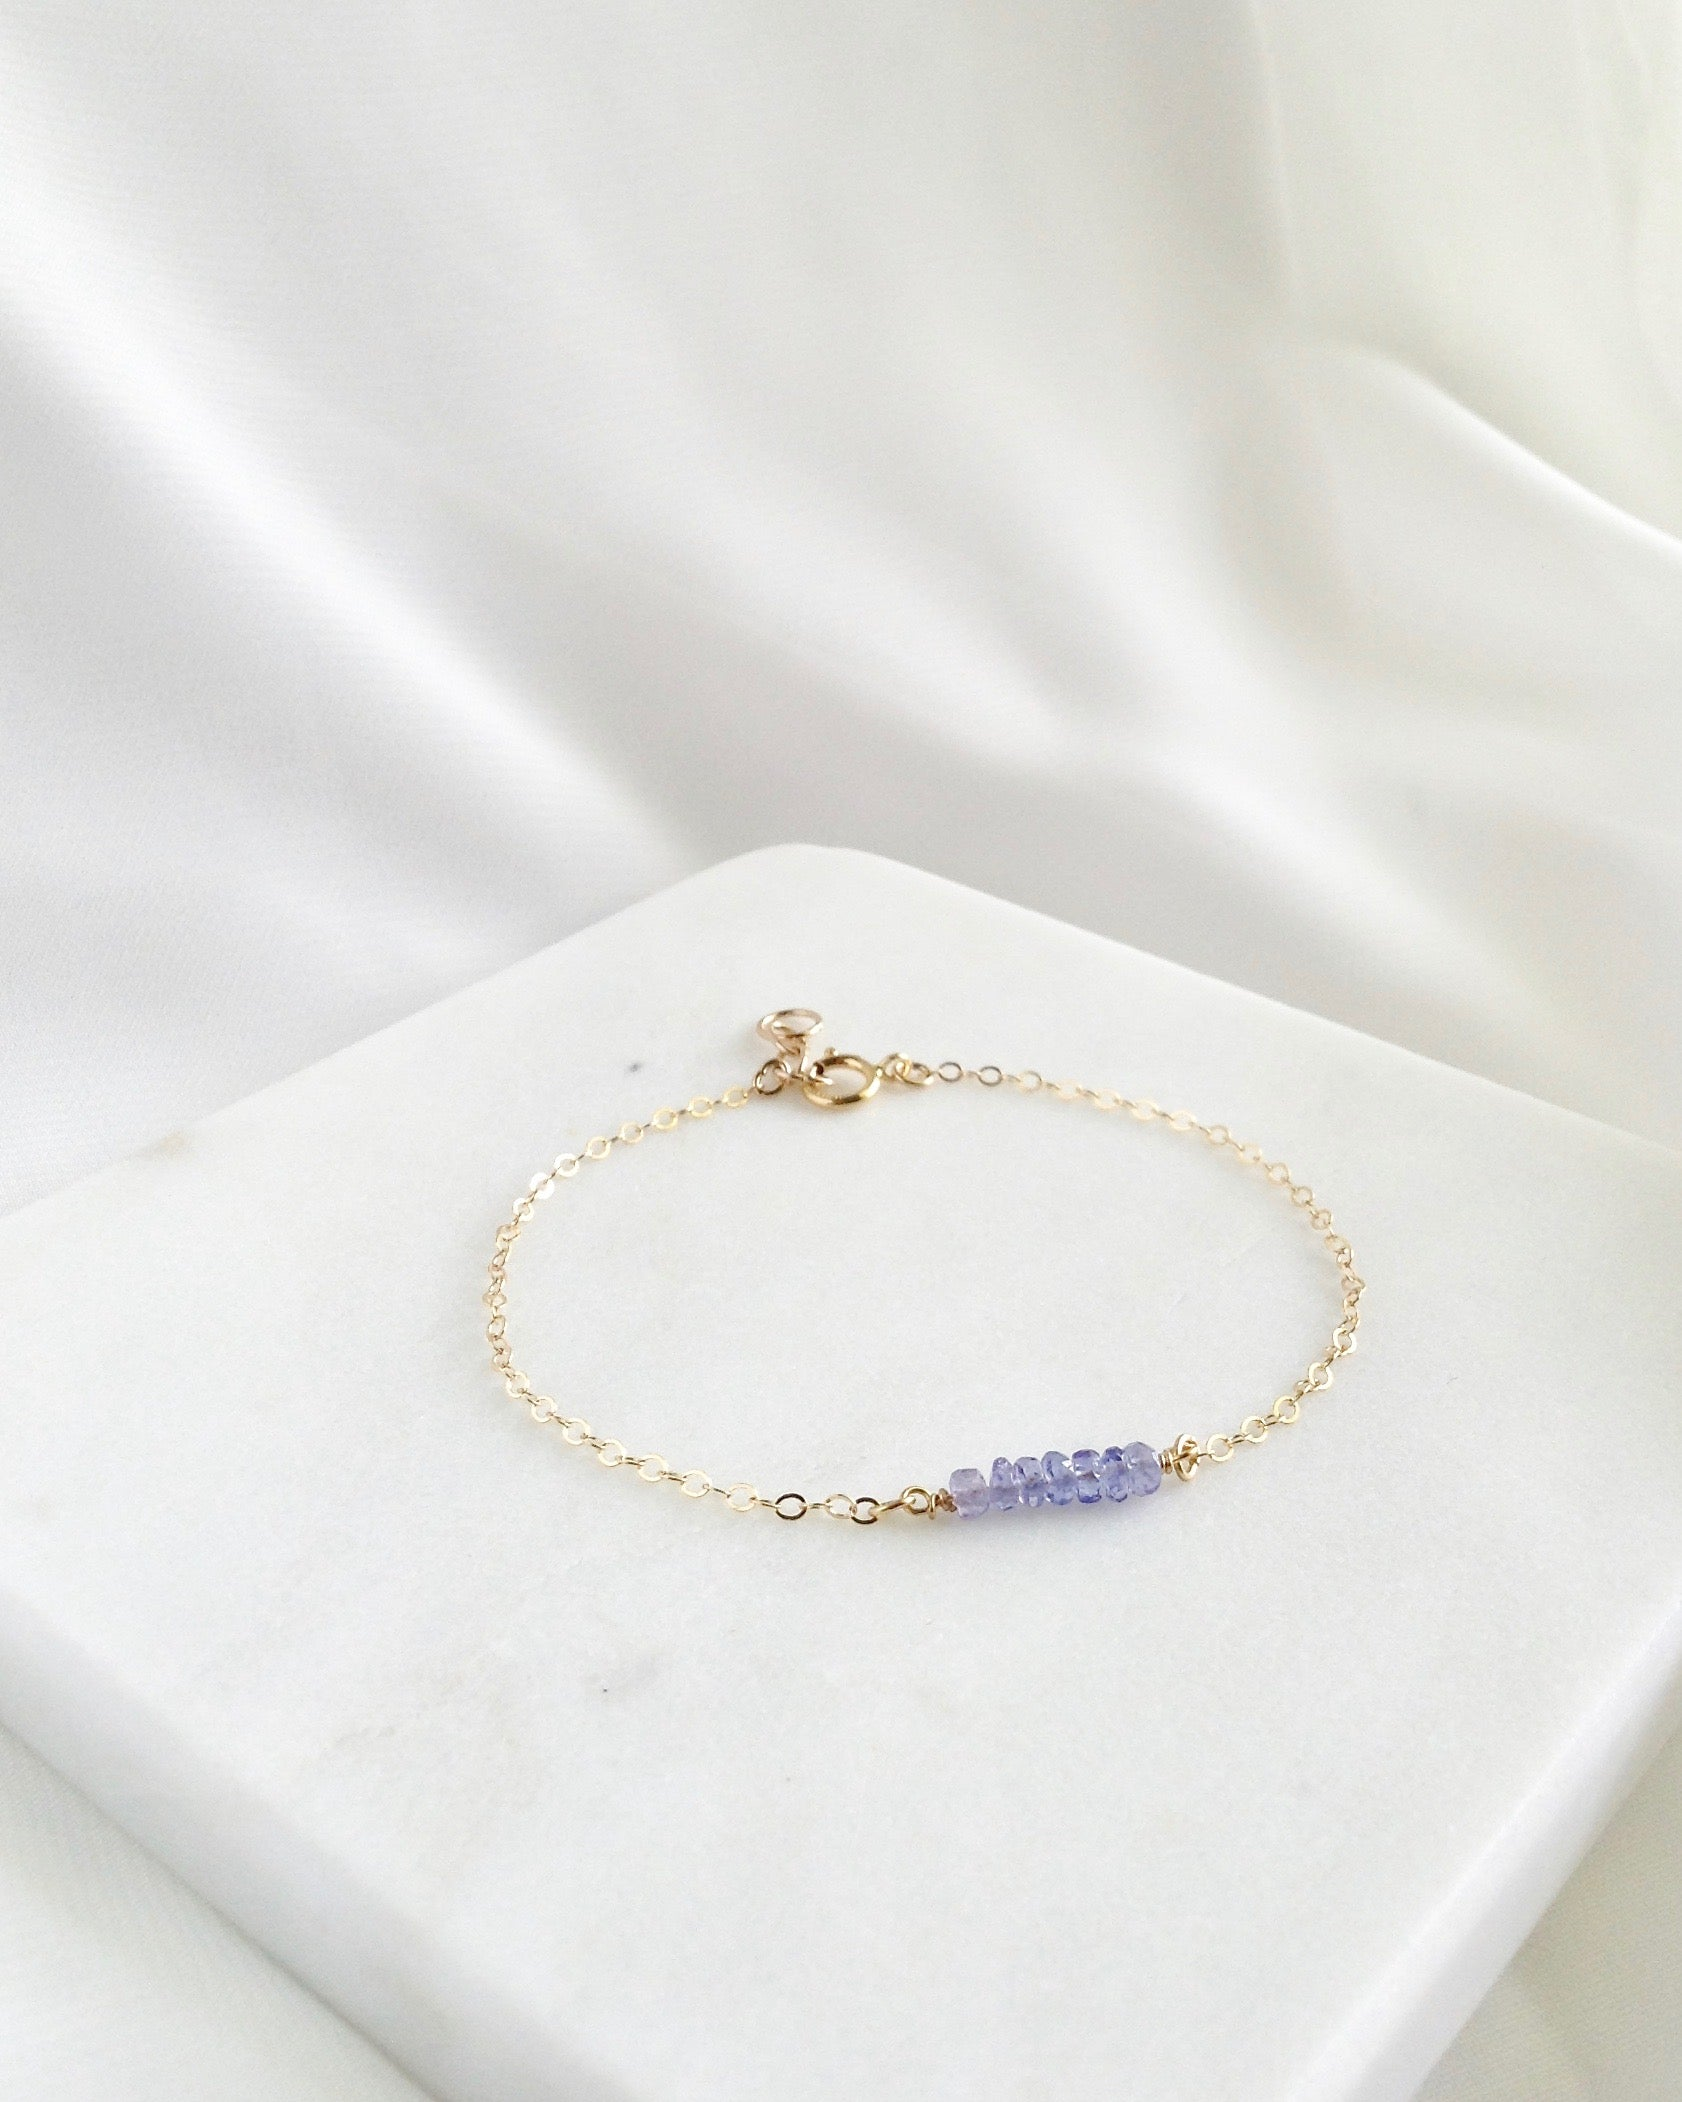 Simple Tanzanite Bracelet In Gold Filled or Sterling Silver | IB Jewelry